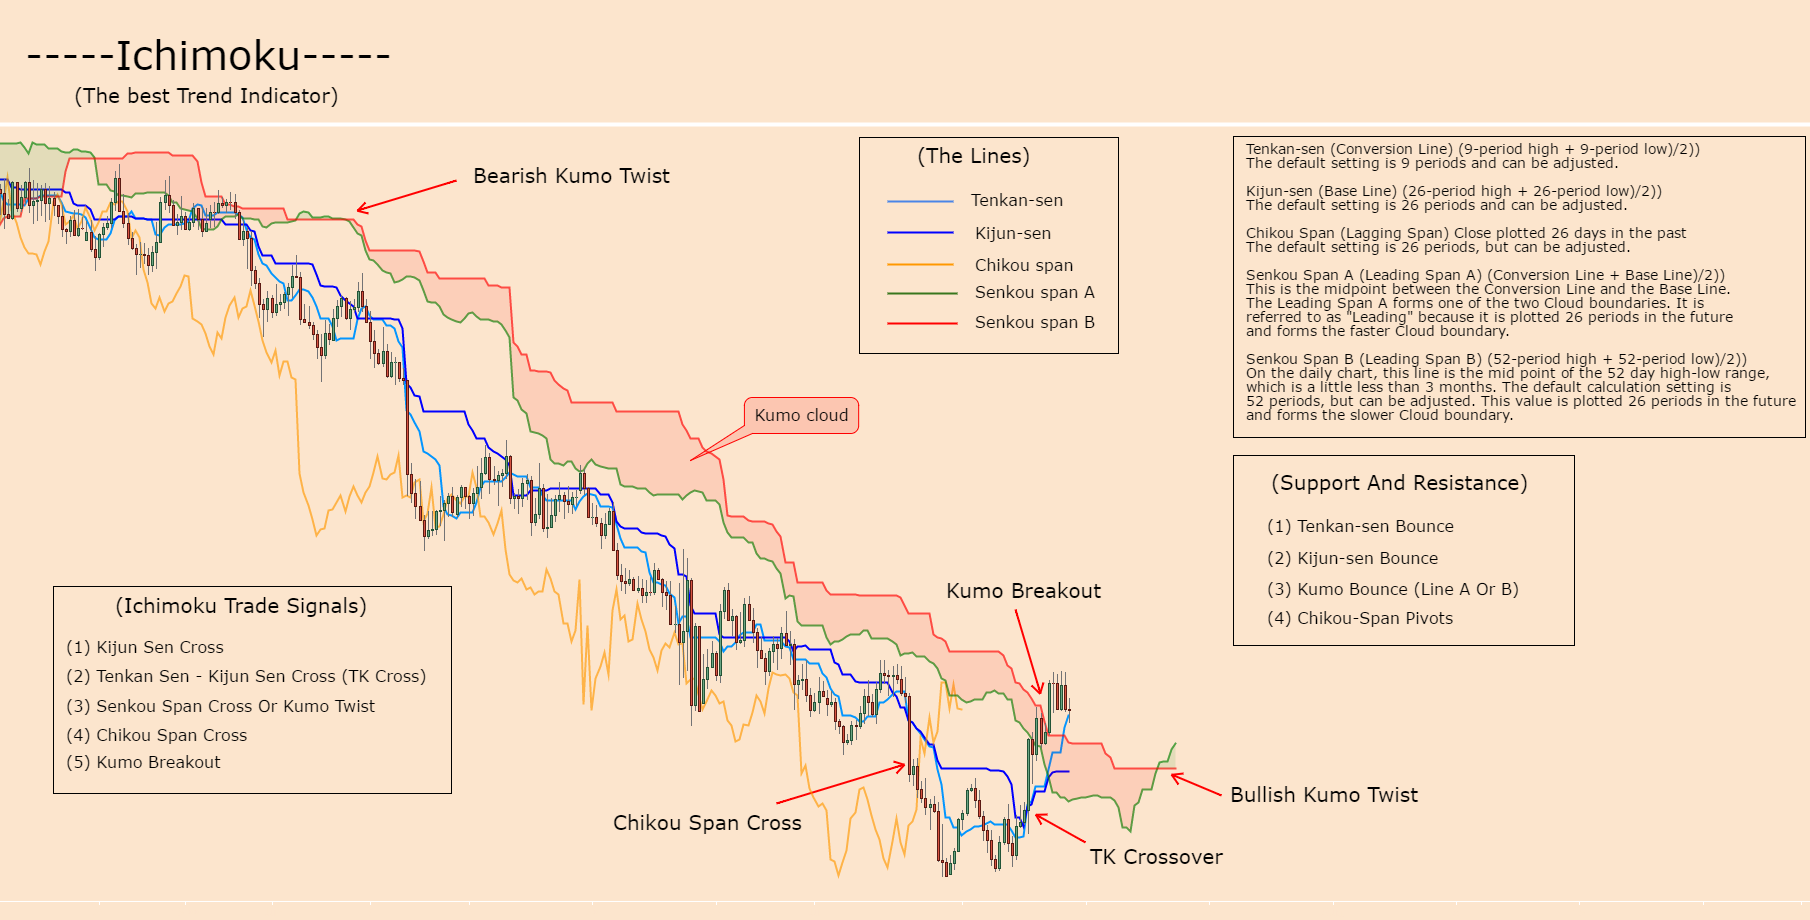 ICHIMOKU KINKO HYO (THE BEST TREND INDICATOR)